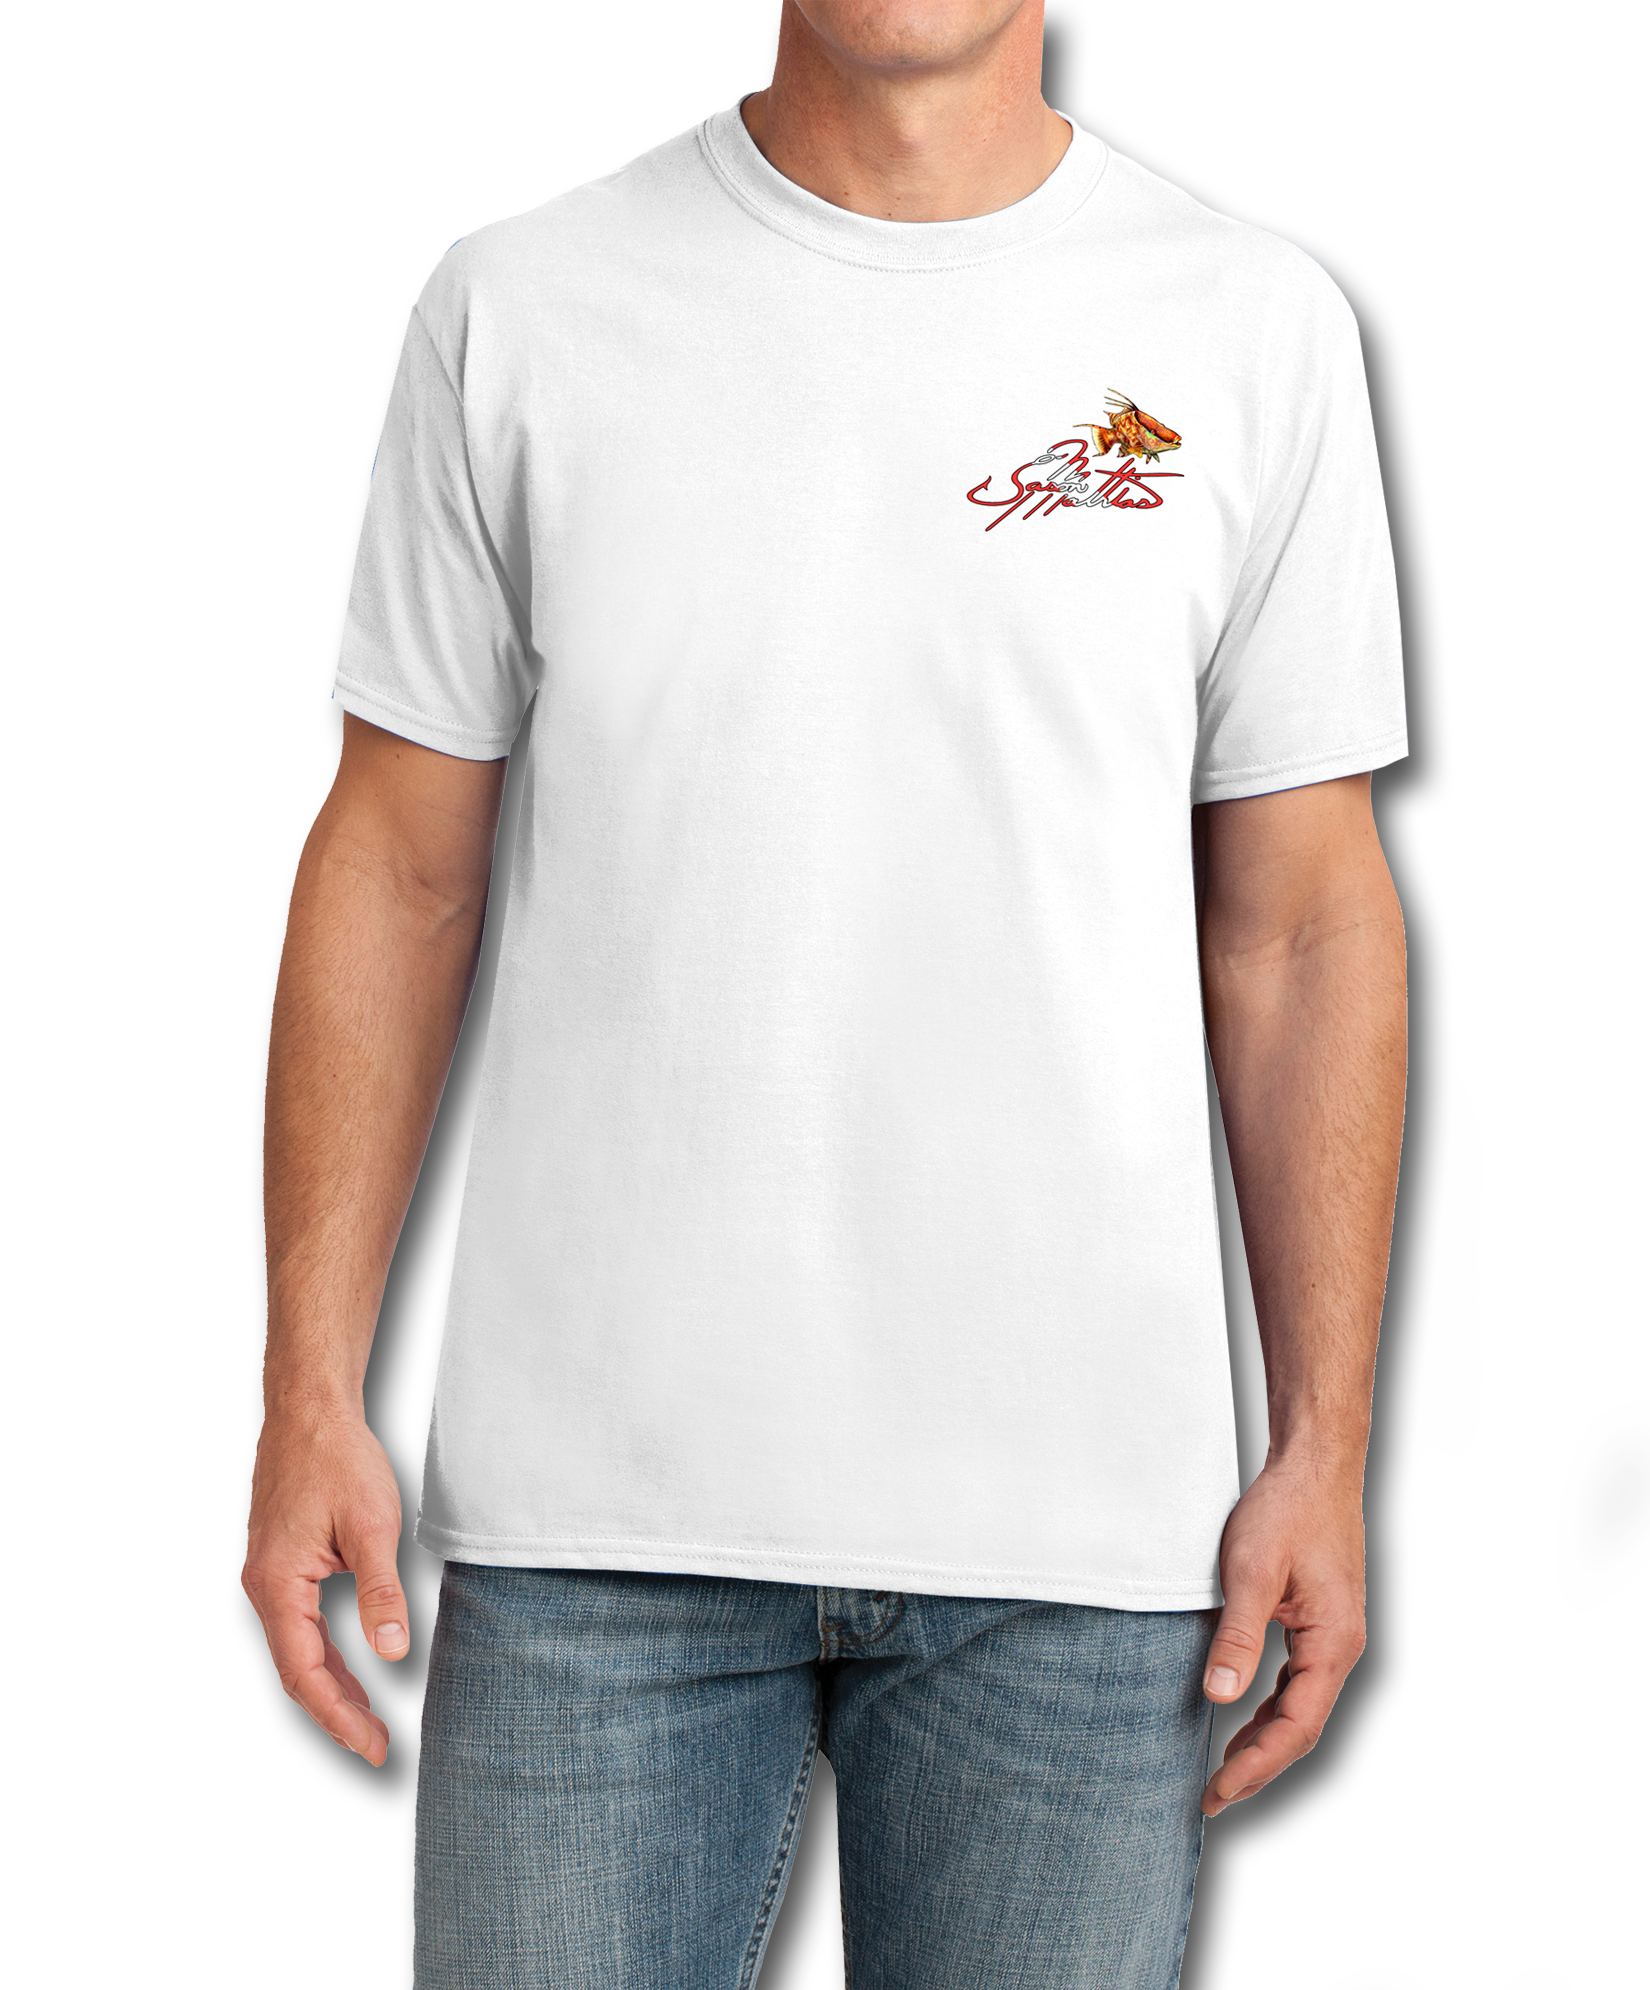 cotton-feel-t-shirt-white-jason-mathias-art-hogfish.png